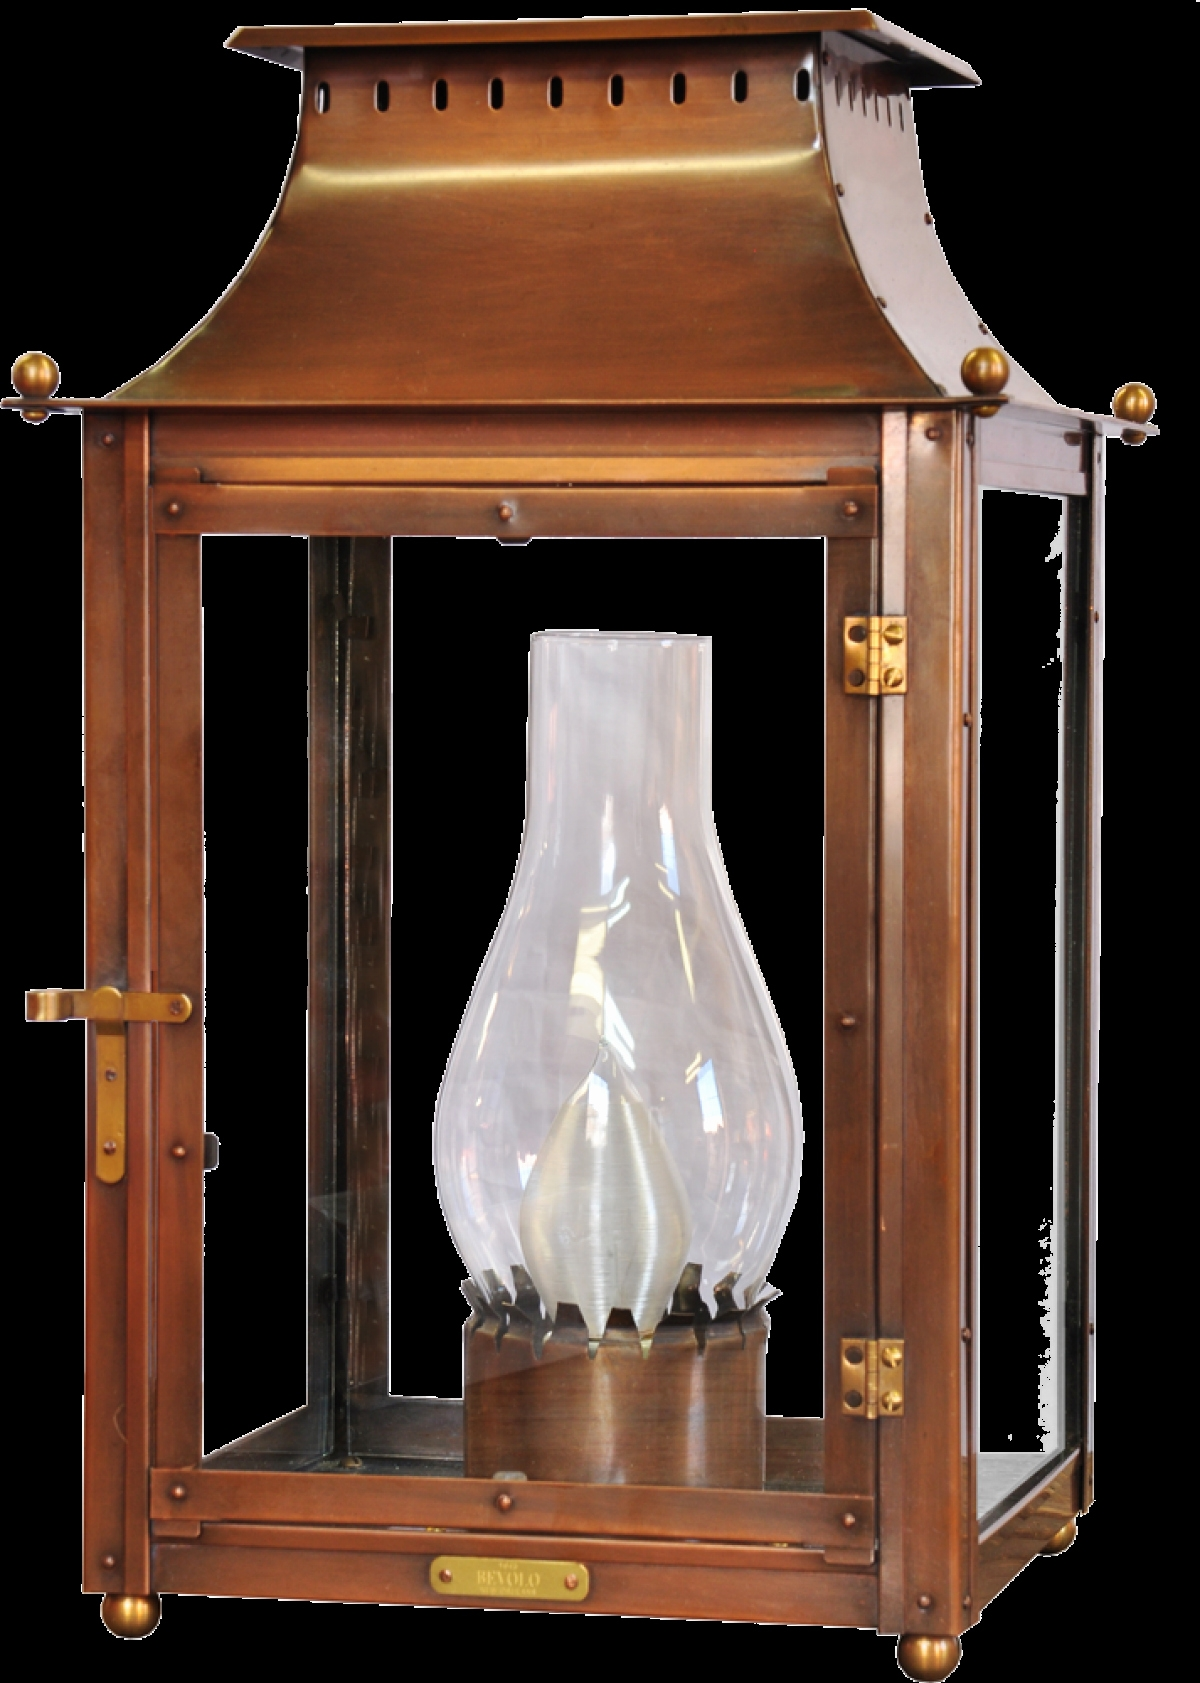 Outdoor Electric Lantern Lights - Outdoor Lighting Ideas within Copper Outdoor Electric Lanterns (Image 12 of 20)